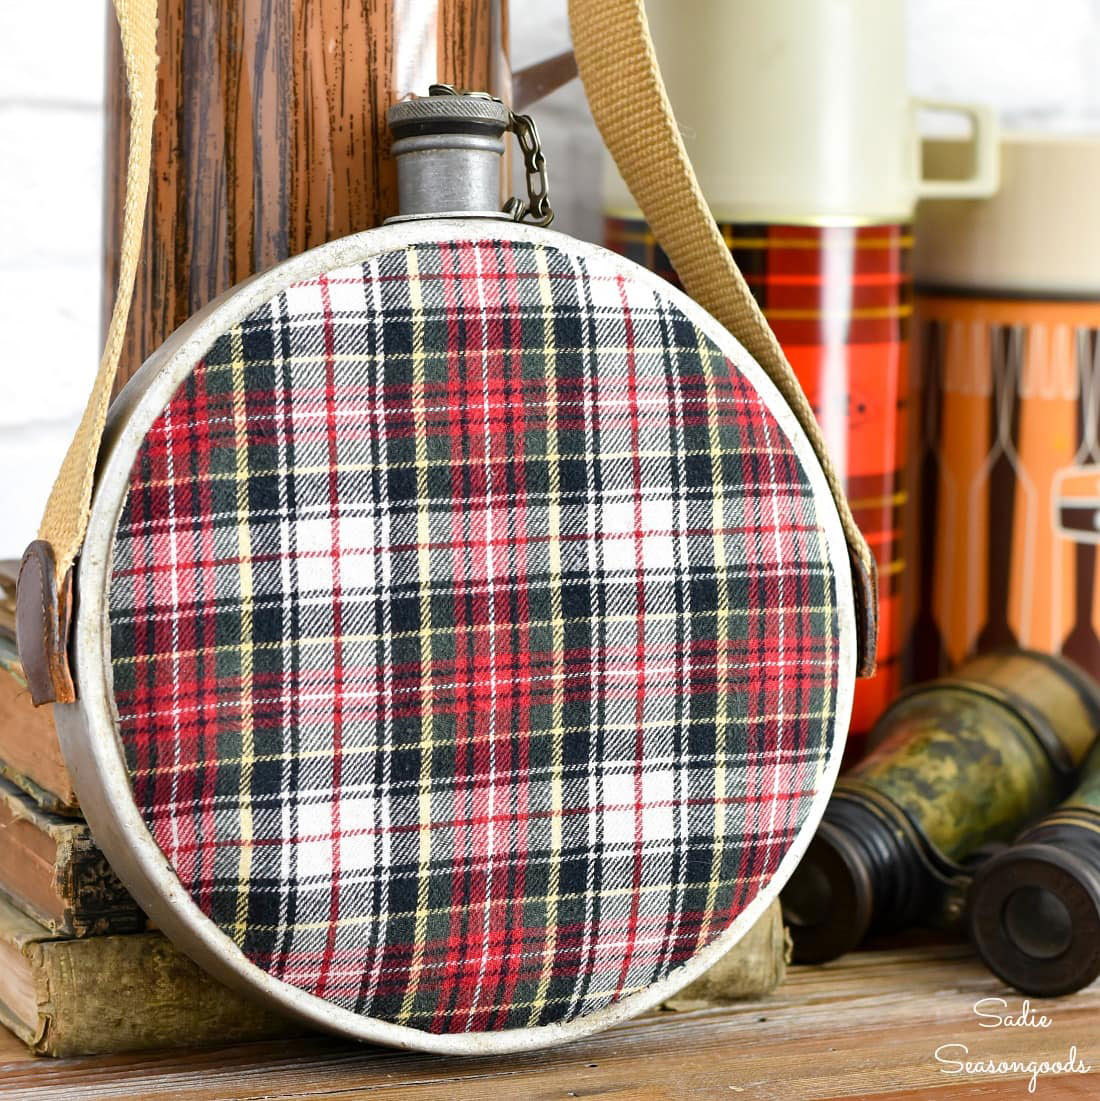 vintage metal canteen upcycled with plaid flannel shirt fabric